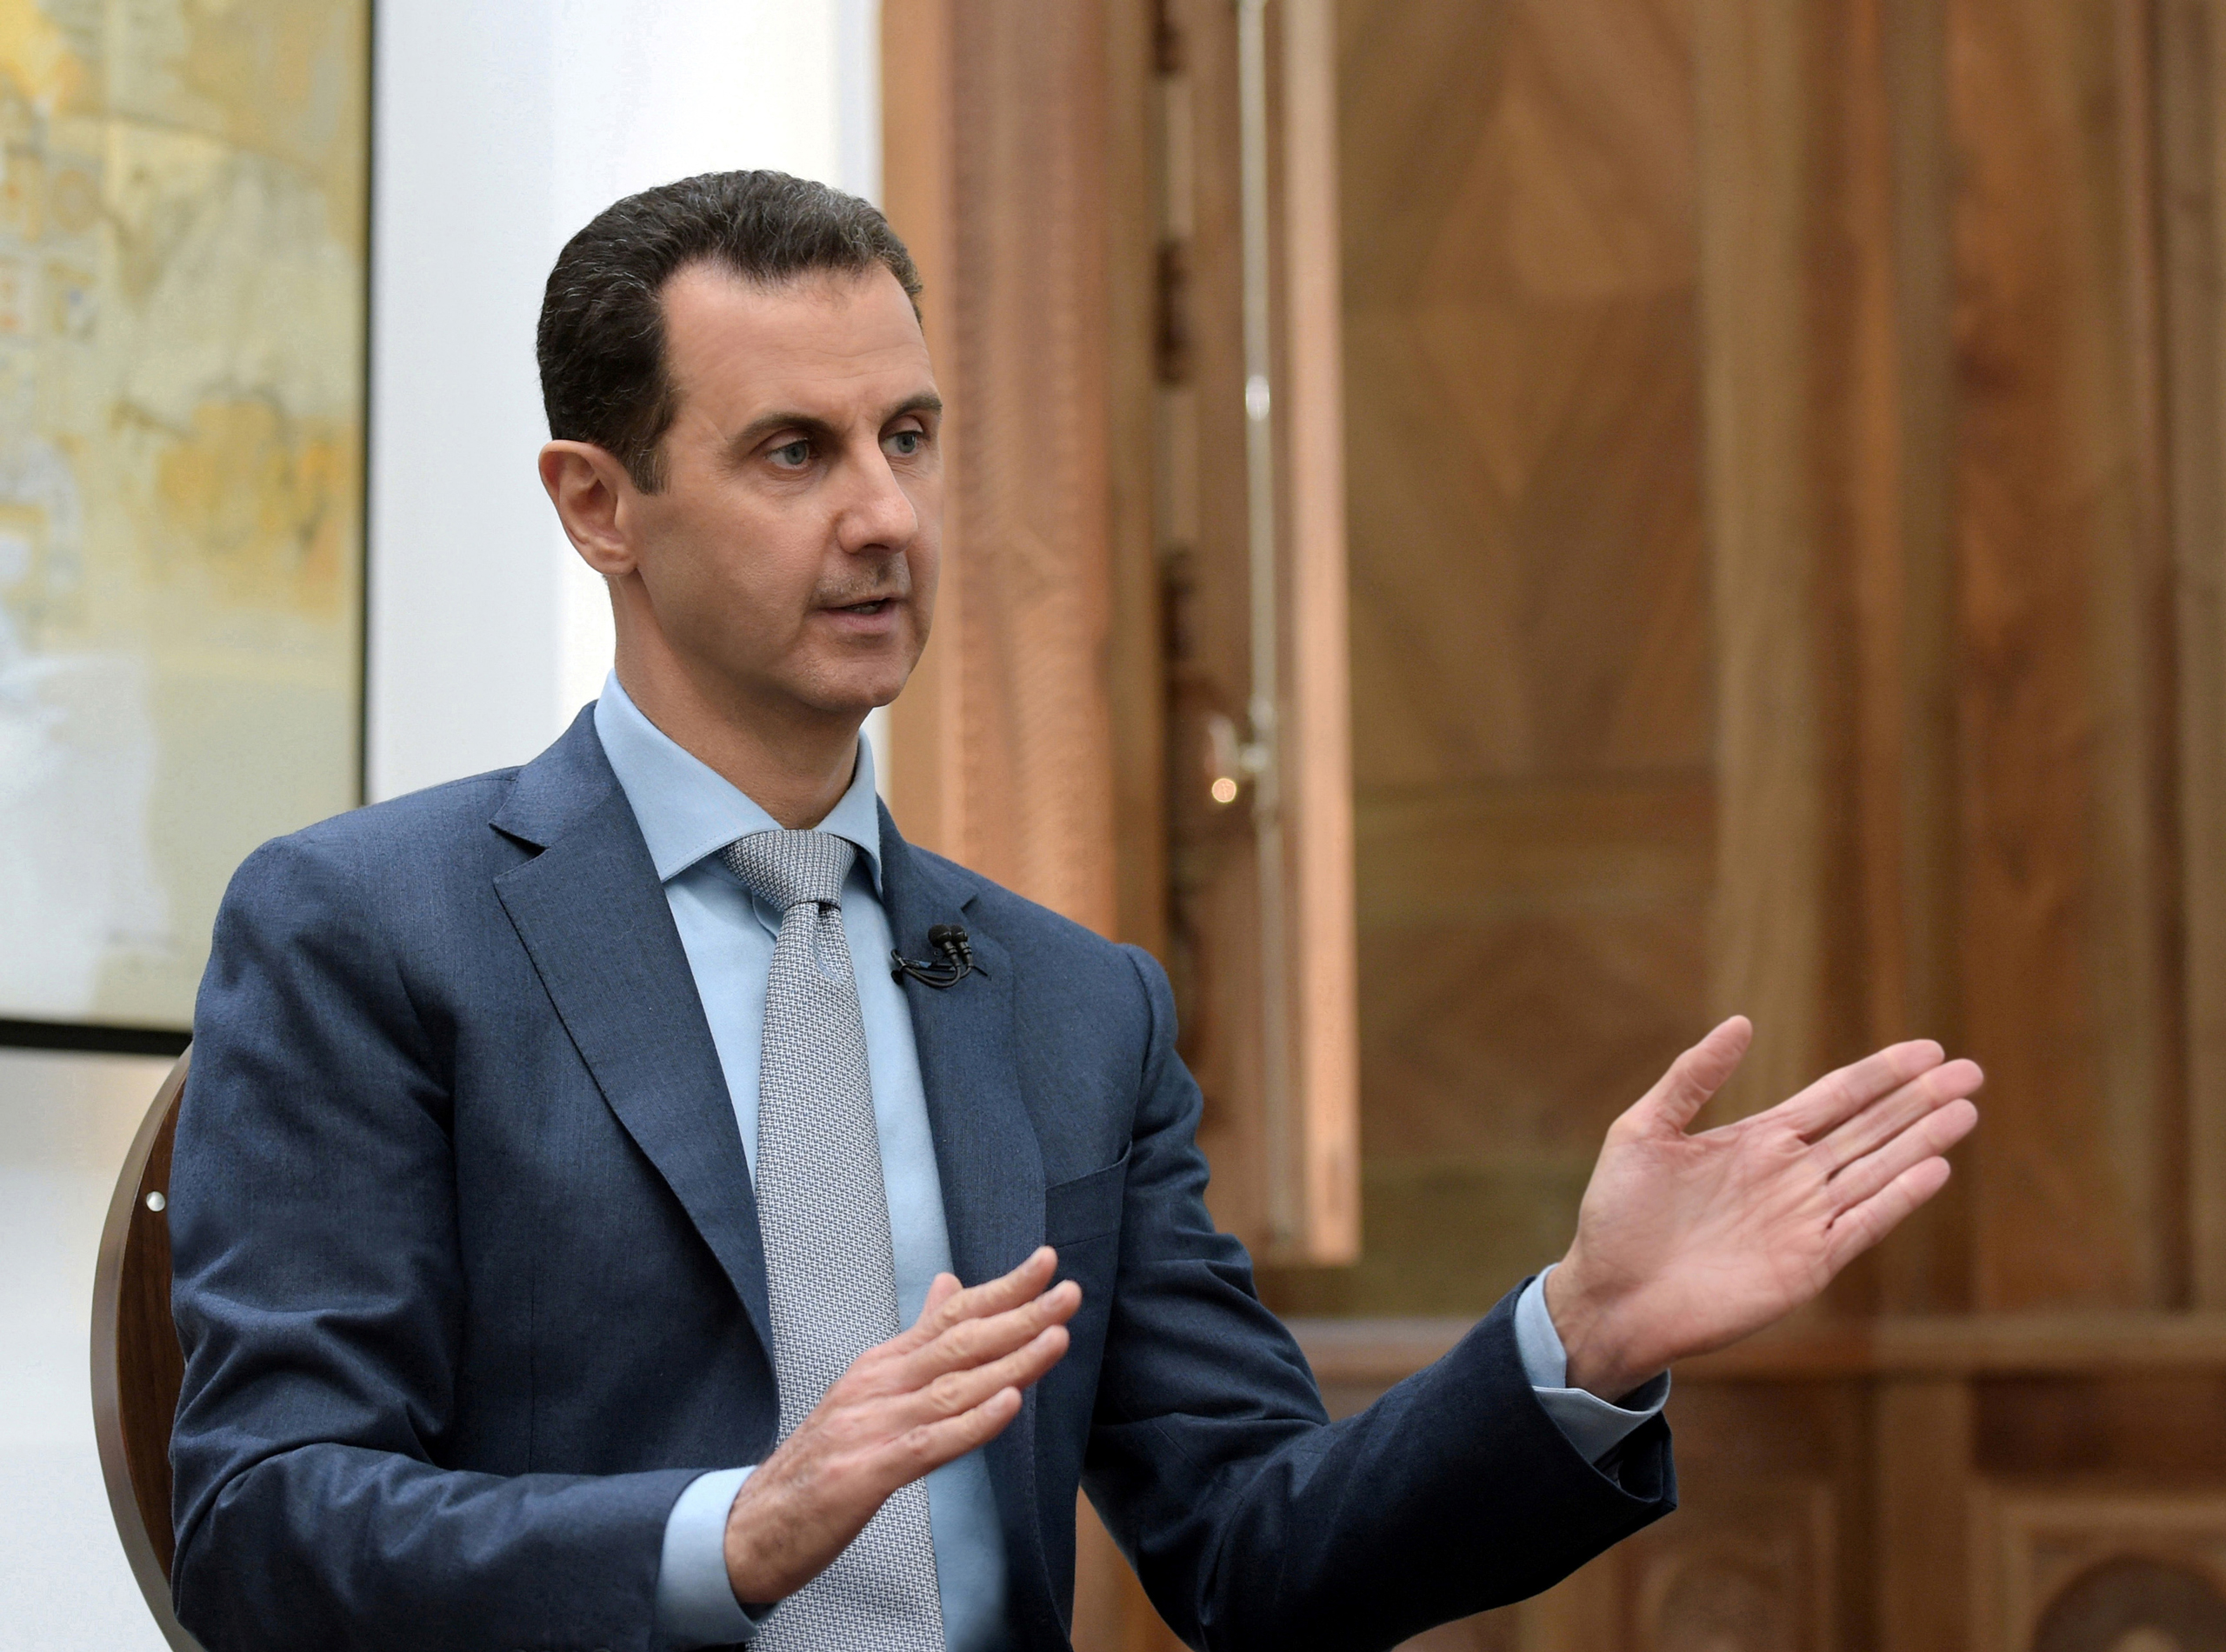 Syria's President Bashar al-Assad speaks during an interview with Yahoo News in this handout picture provided by SANA on Feb. 10, 2017.